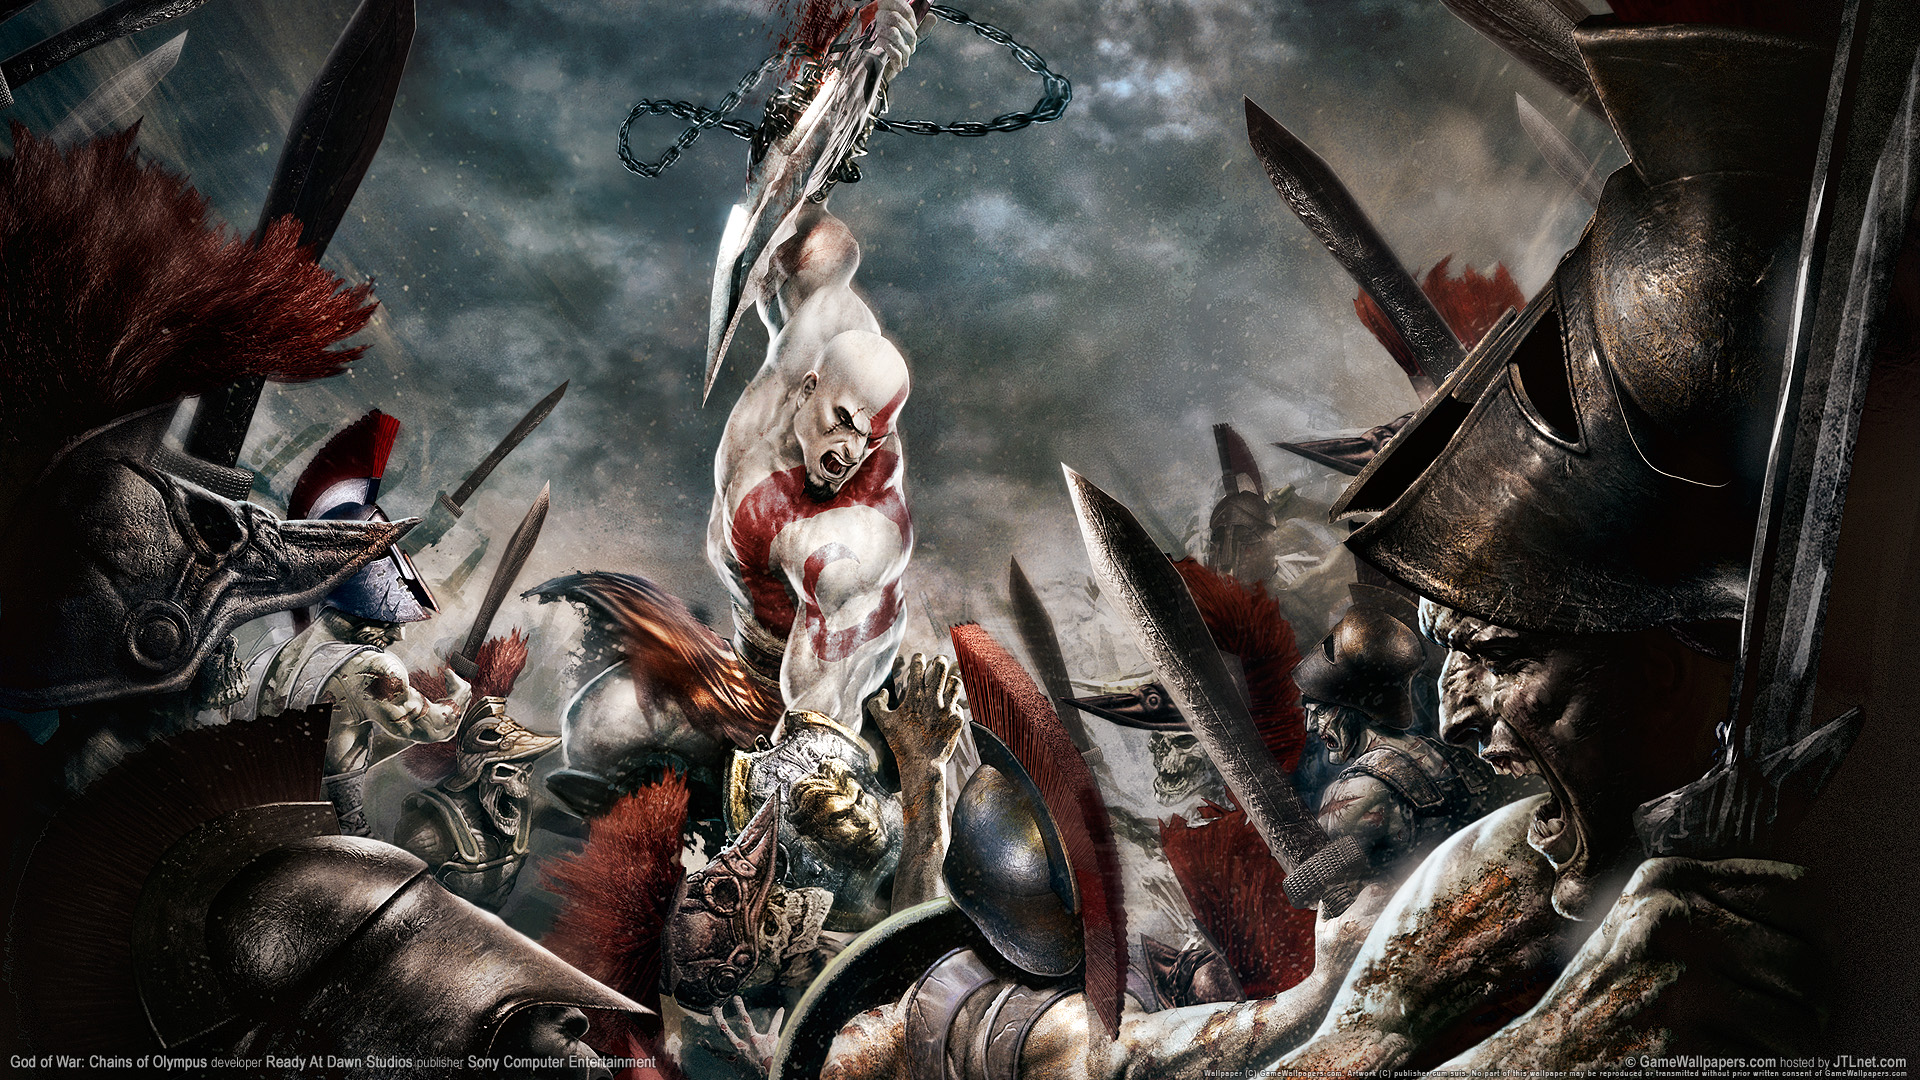 HD Wallpapers God of War 2 New Game